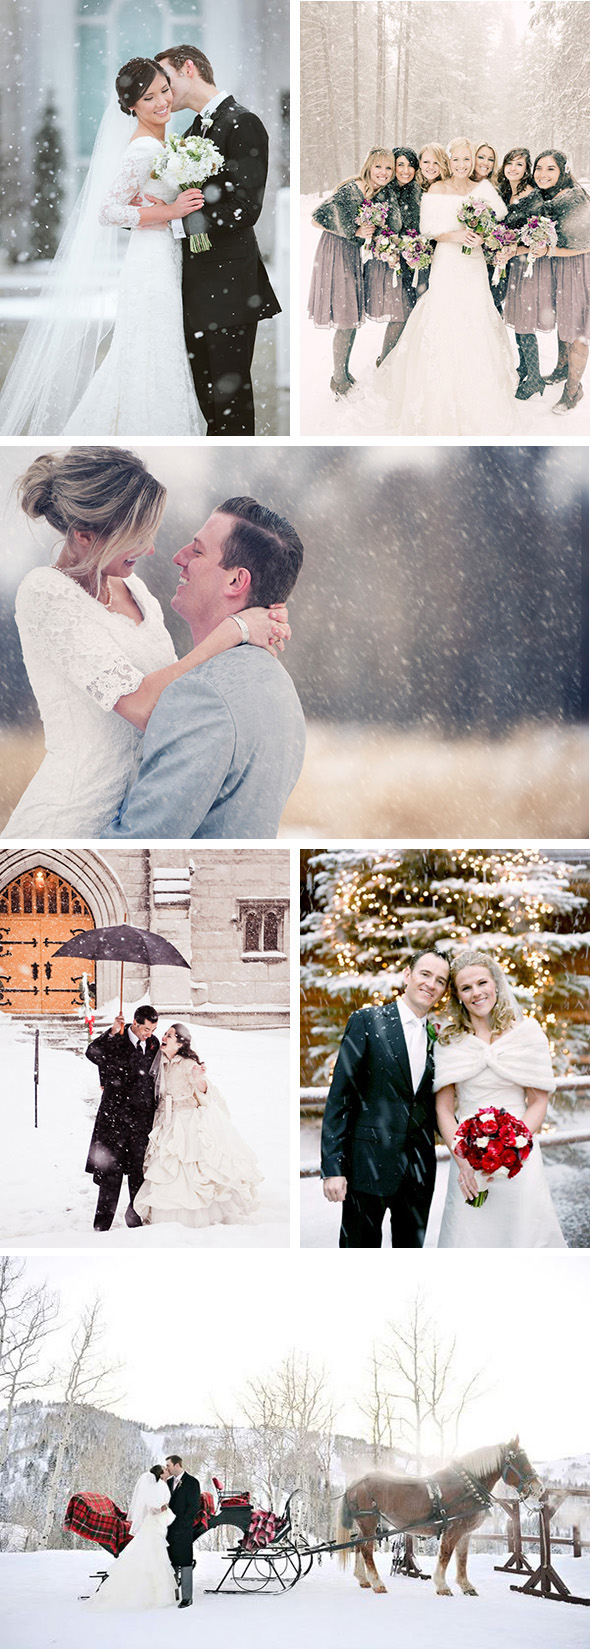 Winterwedding2 Snow Wedding Inspiration